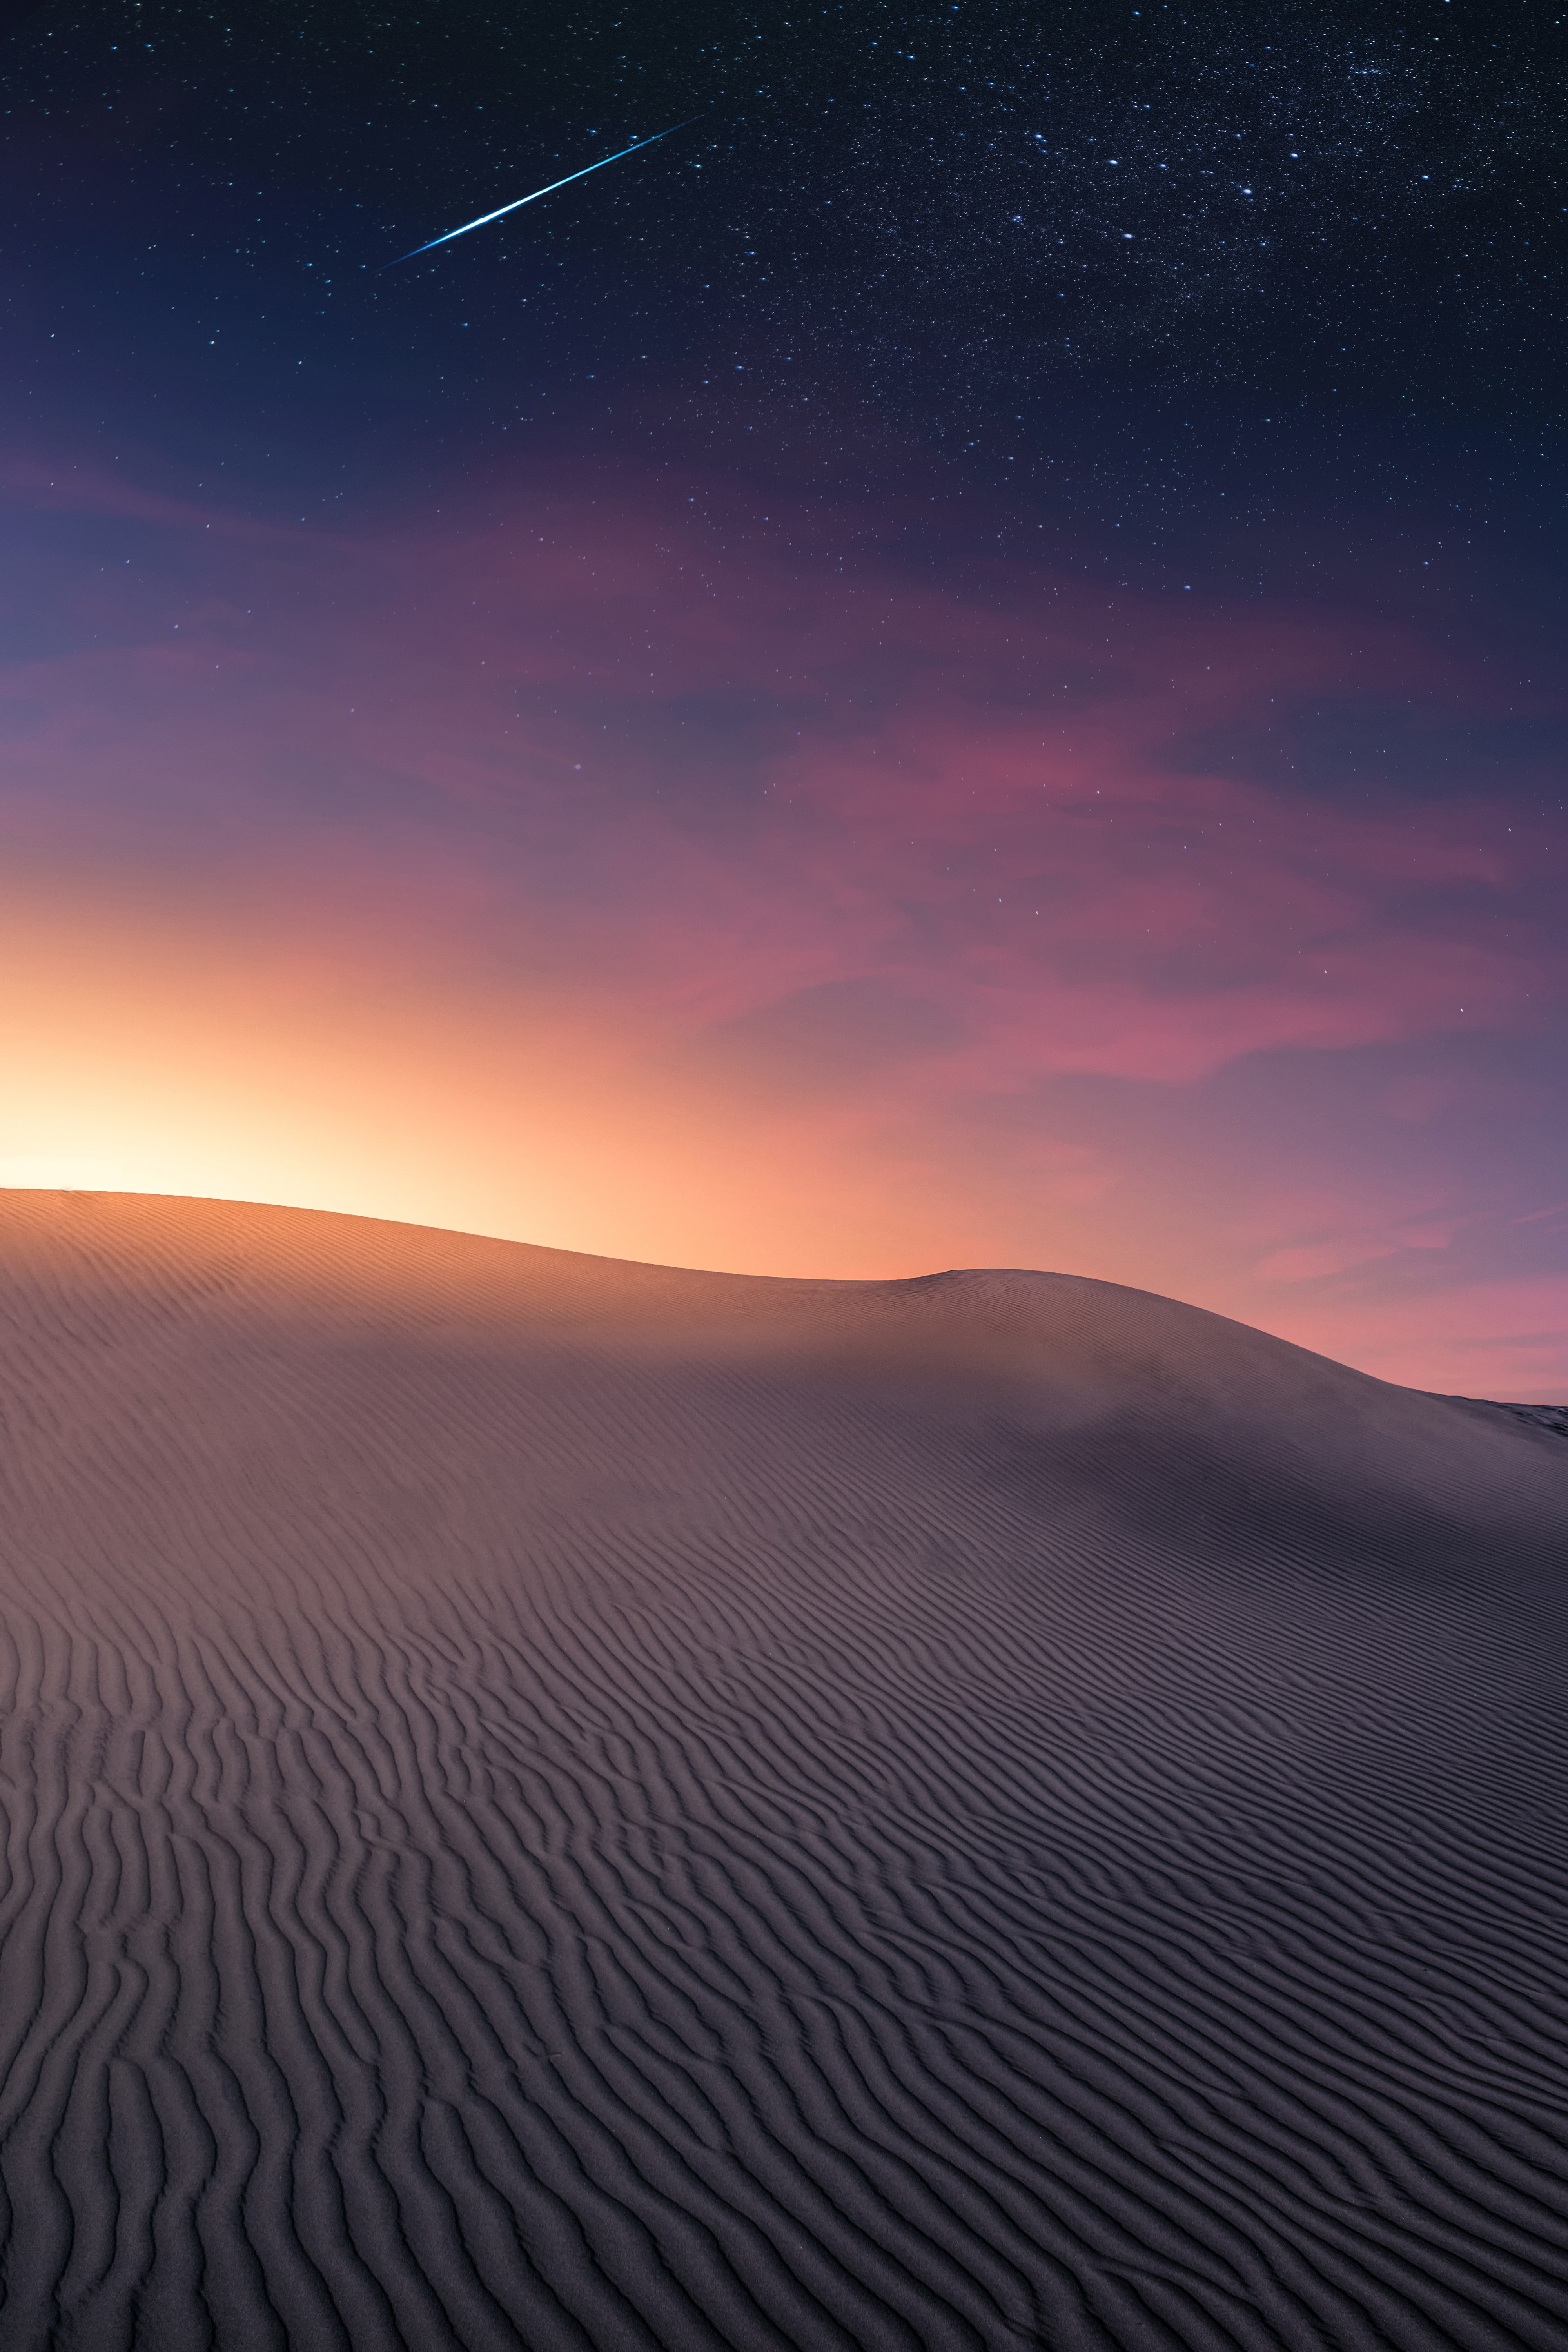 Sunrise over desert with a star falling